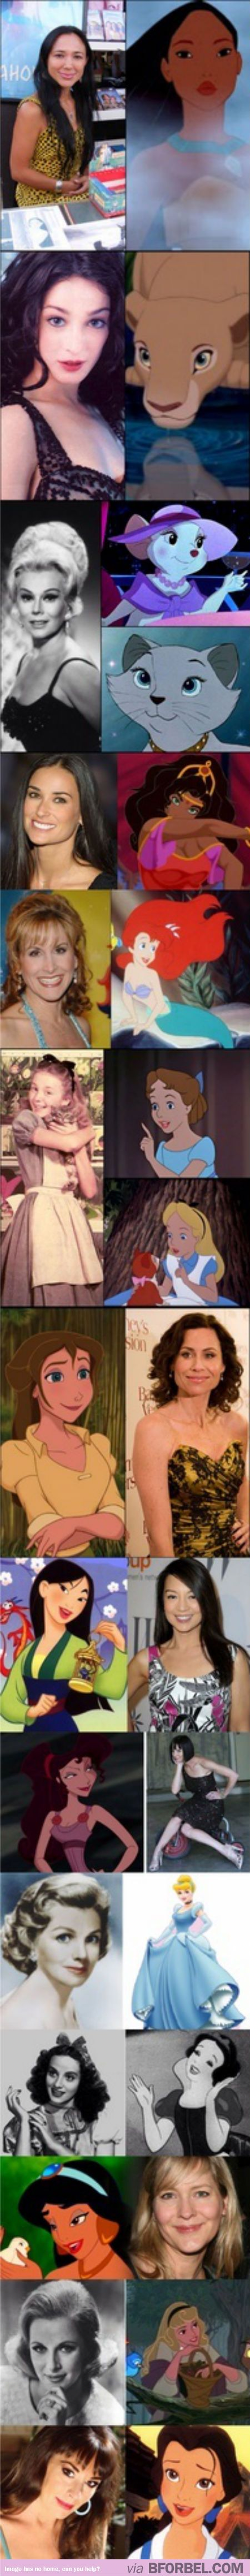 Disney Princesses and their voice actresses. Demi Moore was Esmeralda?!